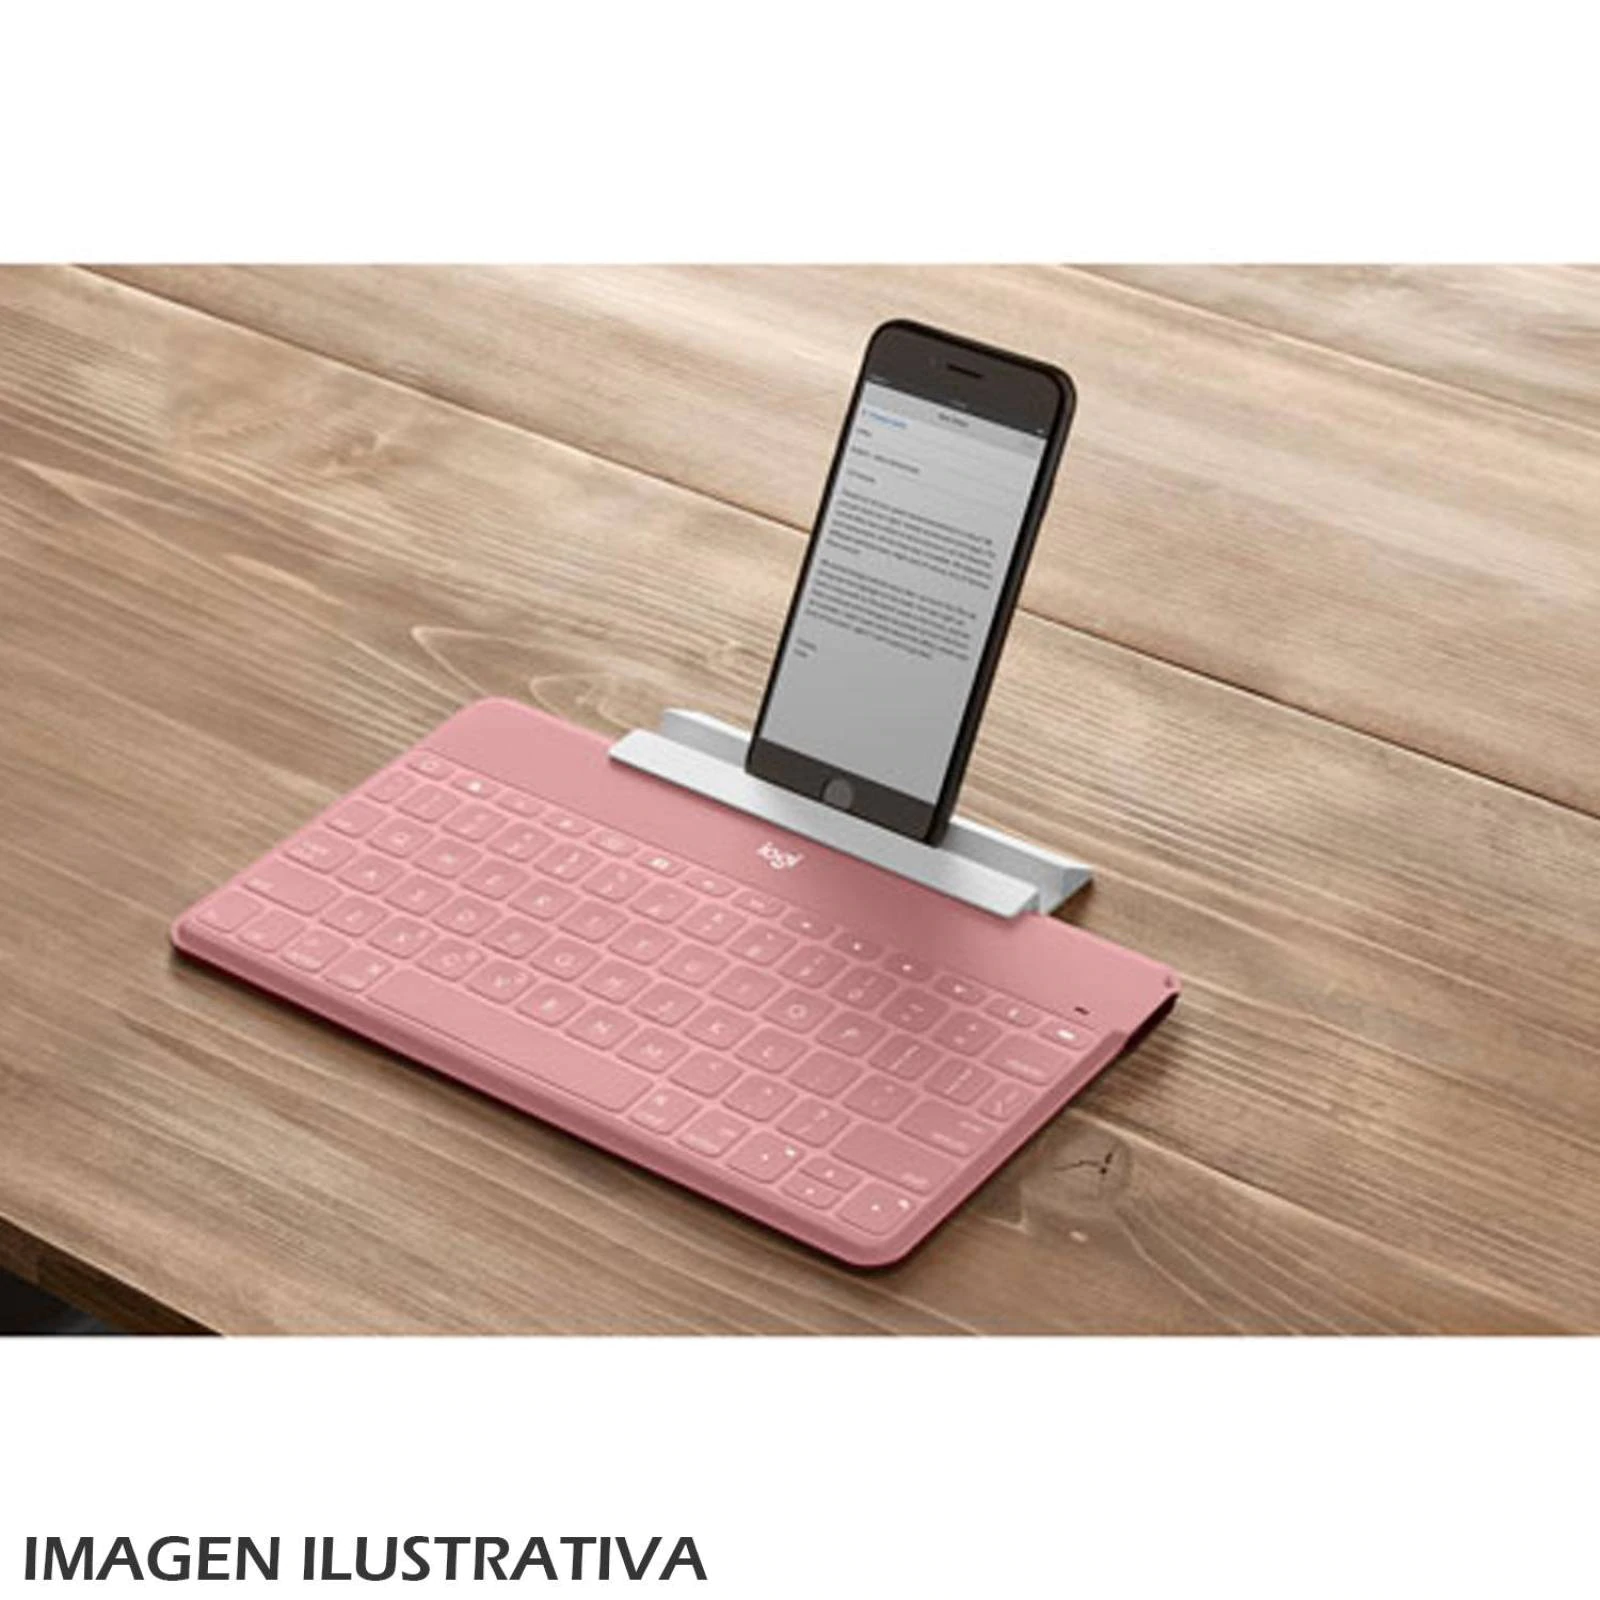 Logitech KEYS-TO-GO Wireless Keyboard (Blush)